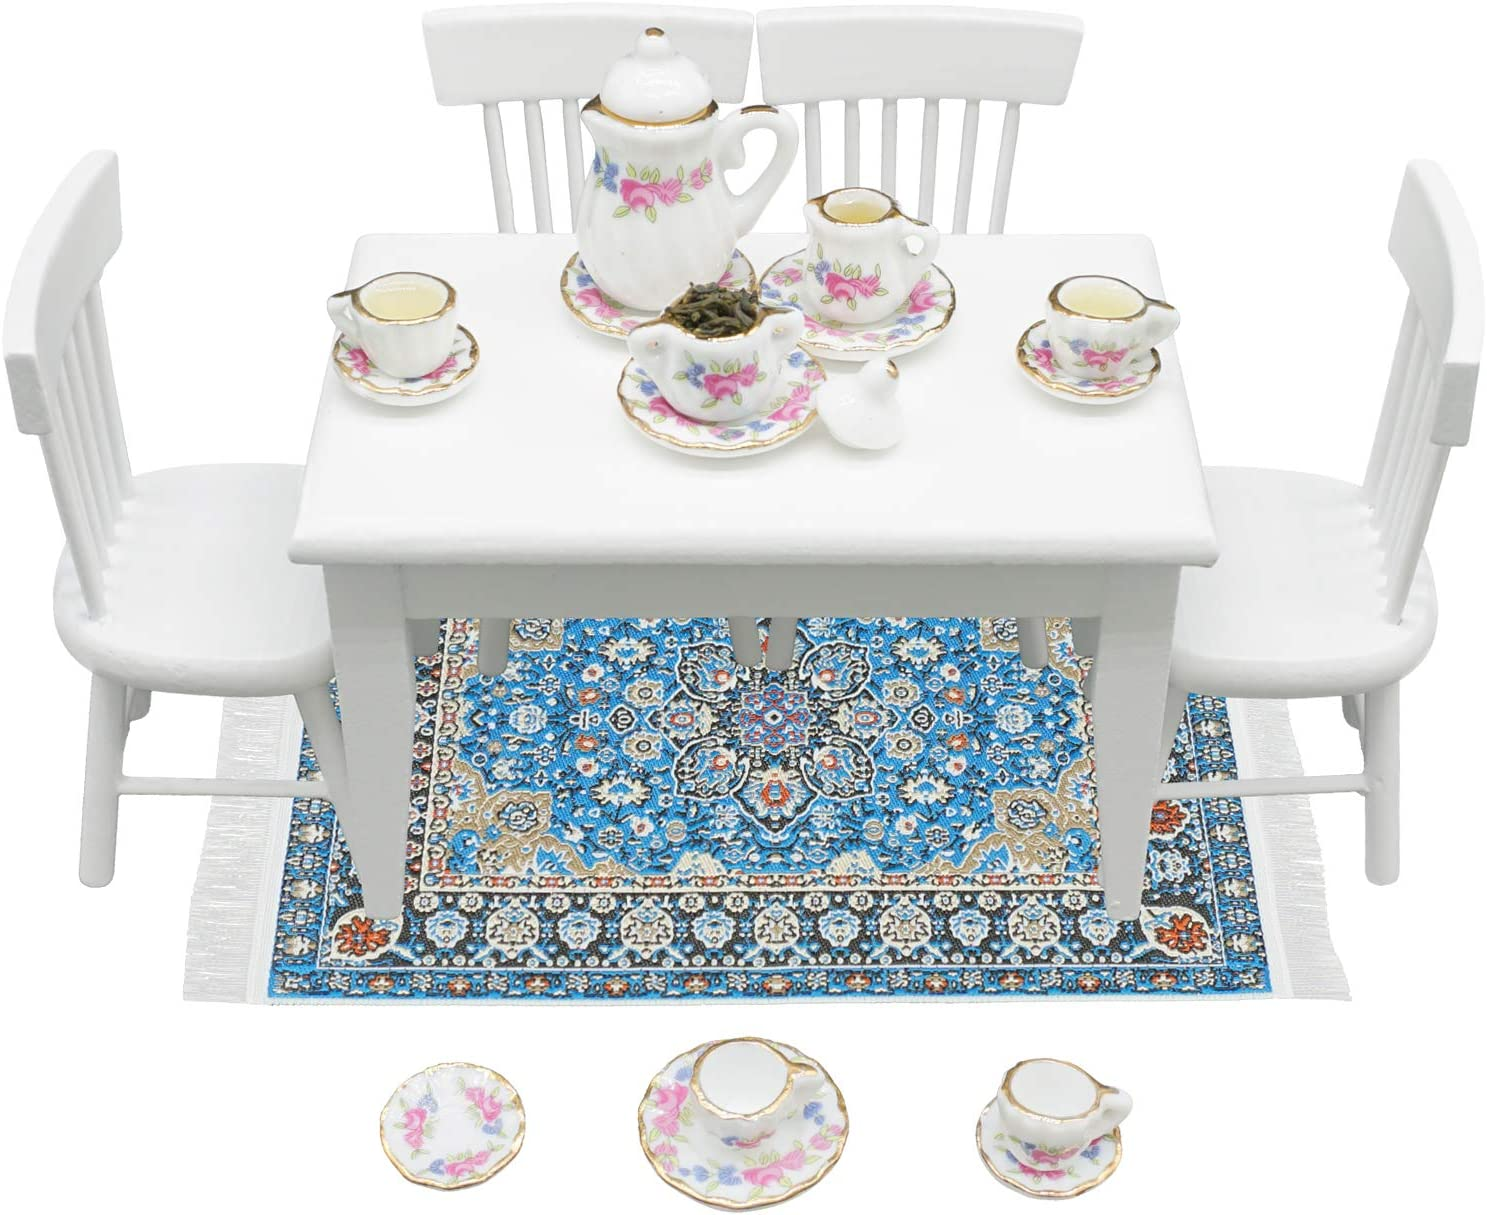 1:12 Dollhouse Furniture - Exquisite Kitchen Room Set (17 Pieces) - Dining Table with Chairs, Tea Set, Carpet - Dining Room Furniture Model (White)